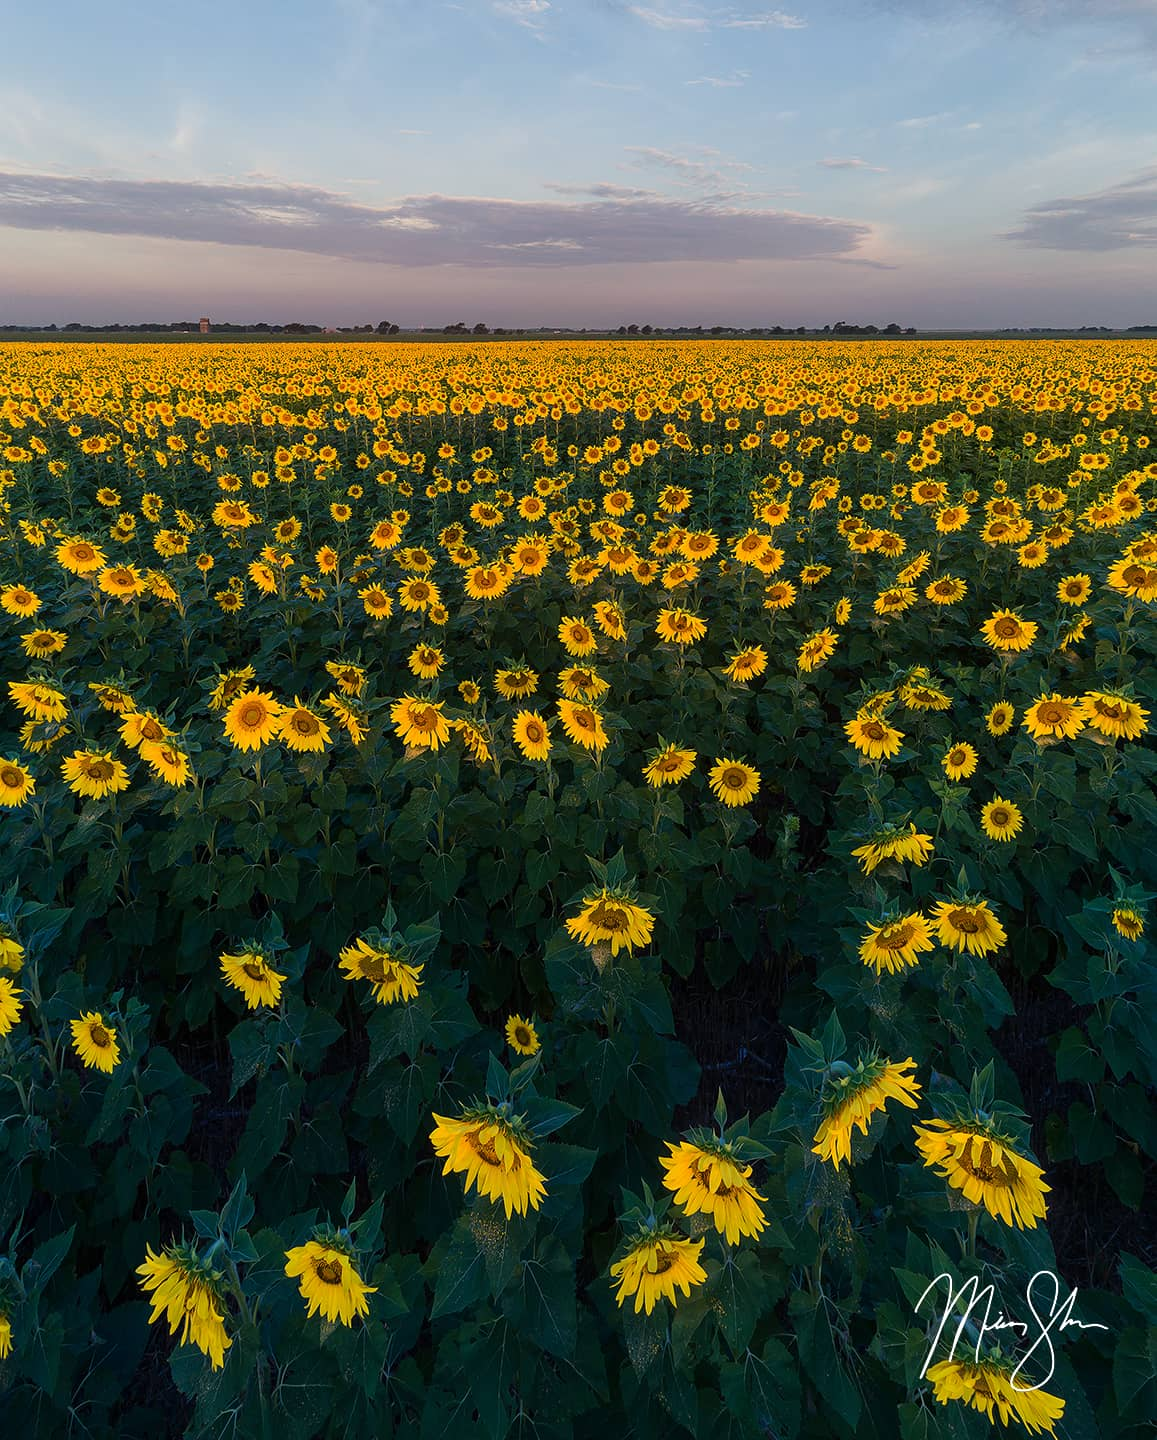 Open edition fine art print of Sunrise from above the Sunflowers from Mickey Shannon Photography. Location: Near Oxford, Kansas